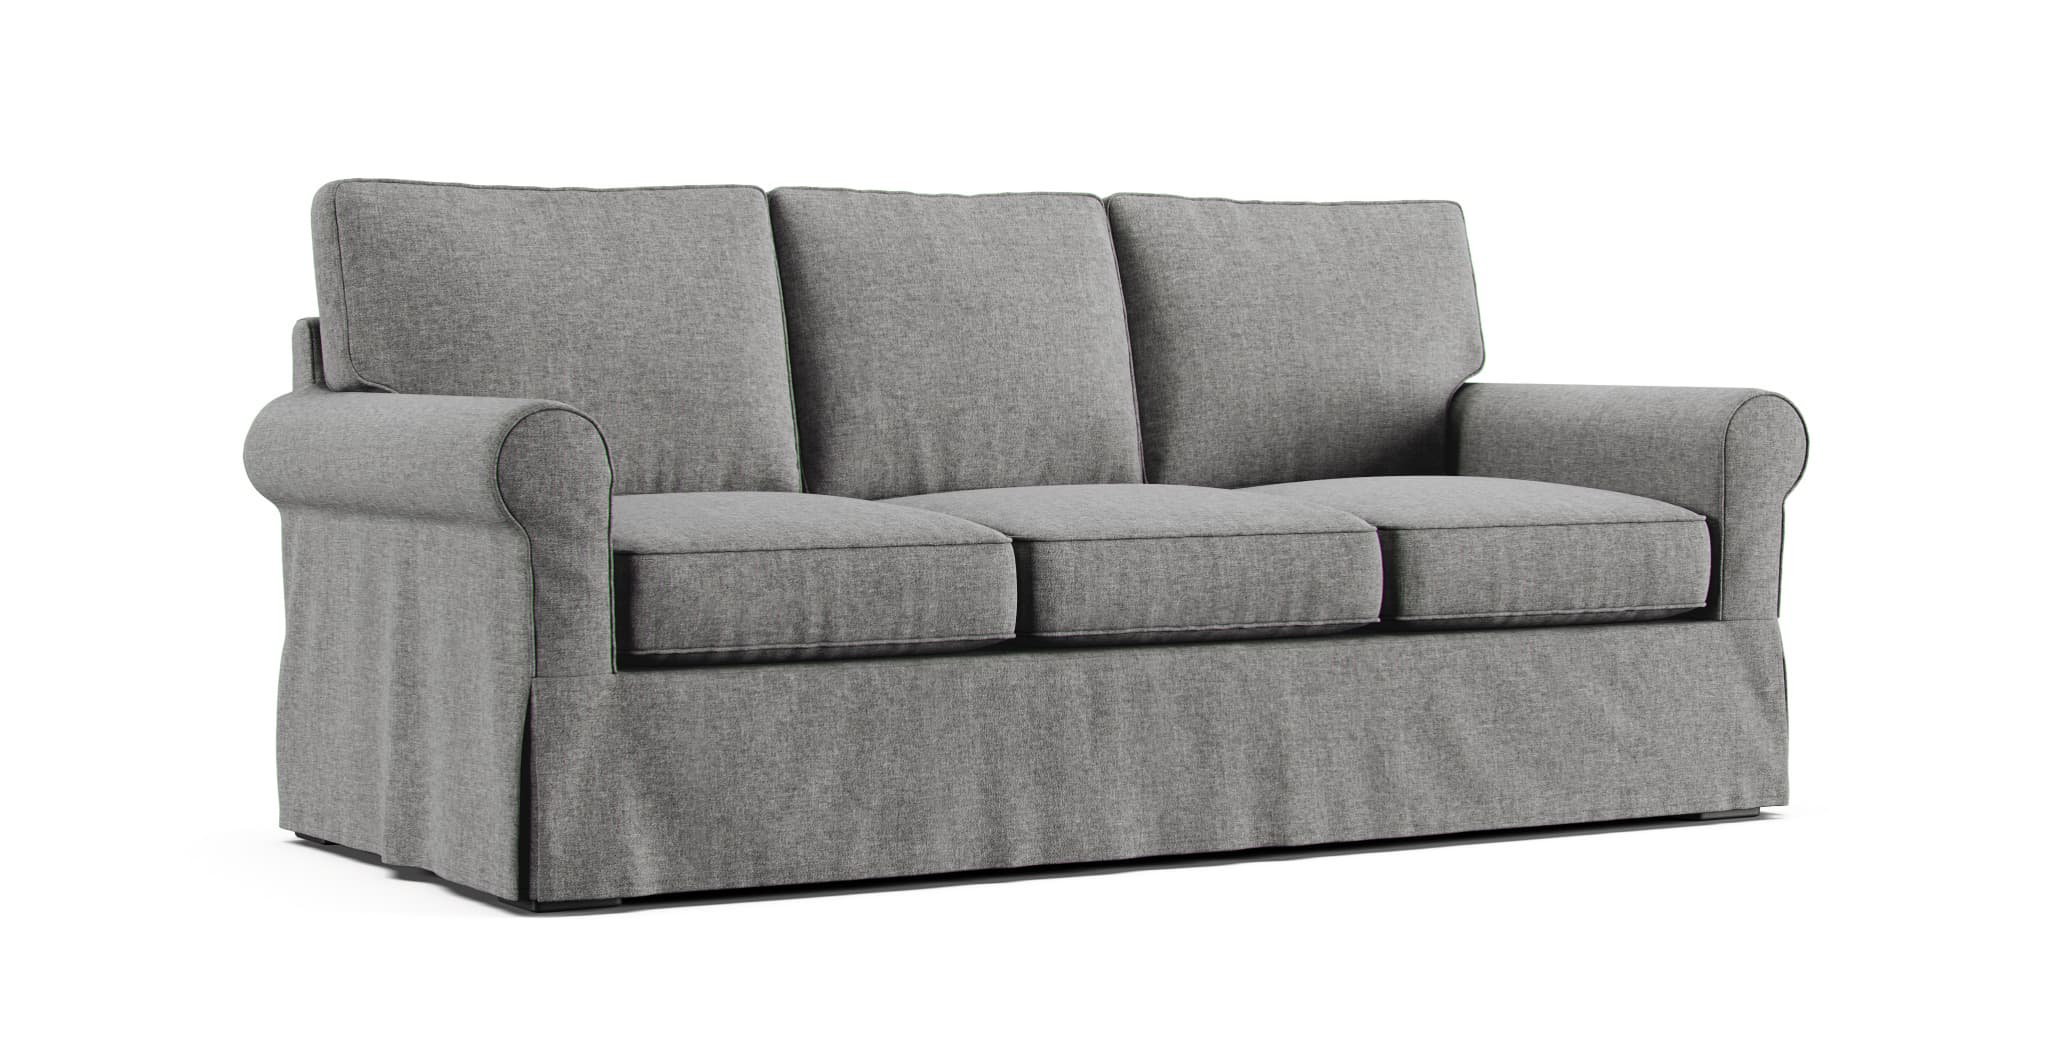 Replacement Pb Buchanan Roll Arm Sofa Slipcovers Couch Slipcovers Comfort Works